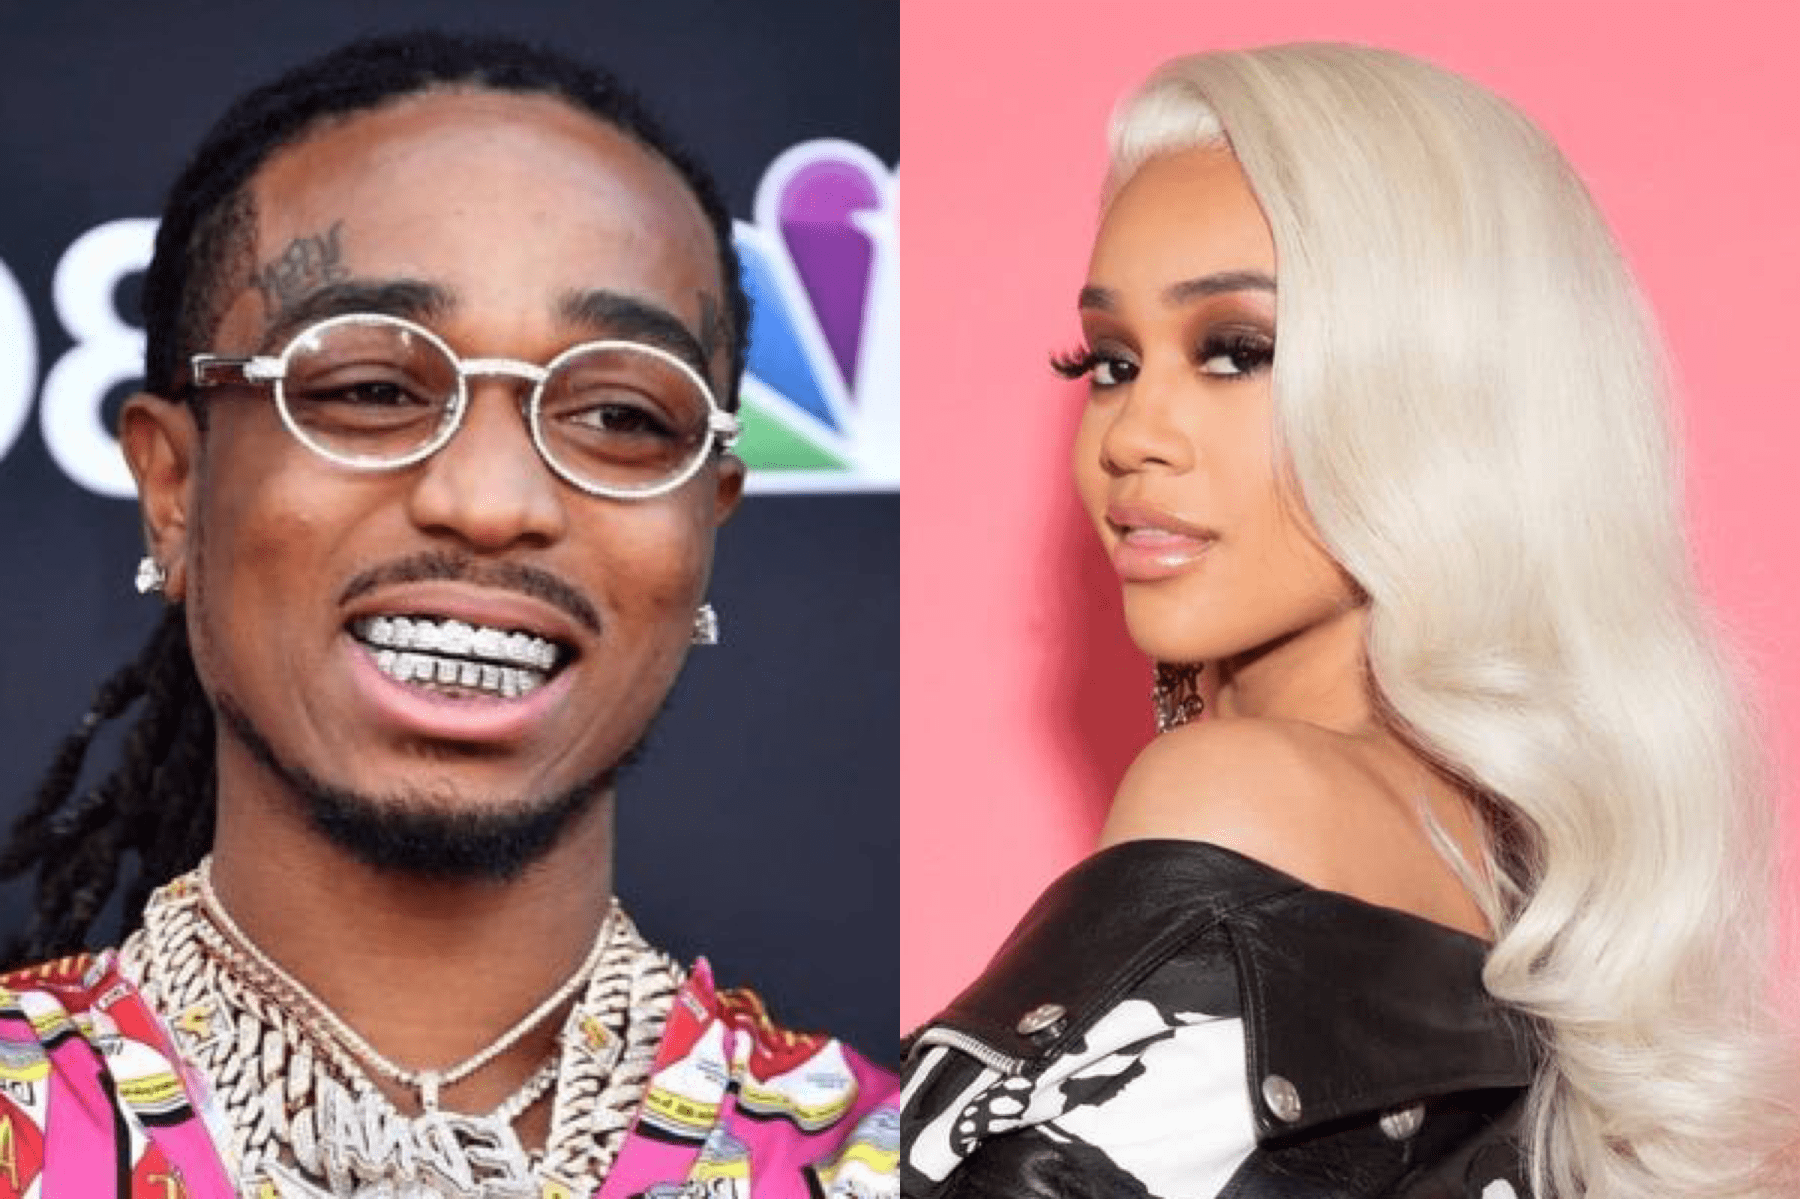 quavo-surprises-saweetie-with-new-bling-and-she-couldnt-be-more-excited